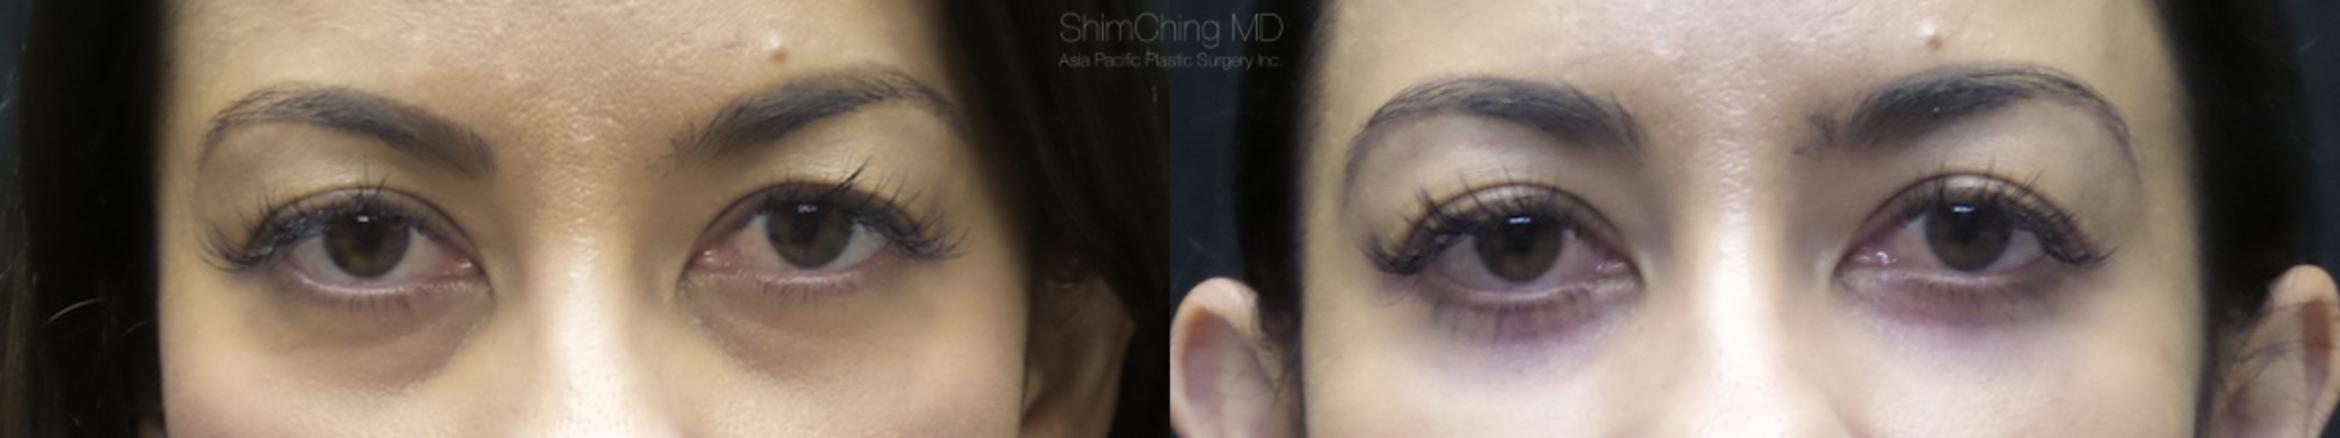 Eyelid Surgery Case 22 Before & After View #1 | Honolulu, HI | Shim Ching, MD: Asia Pacific Plastic Surgery